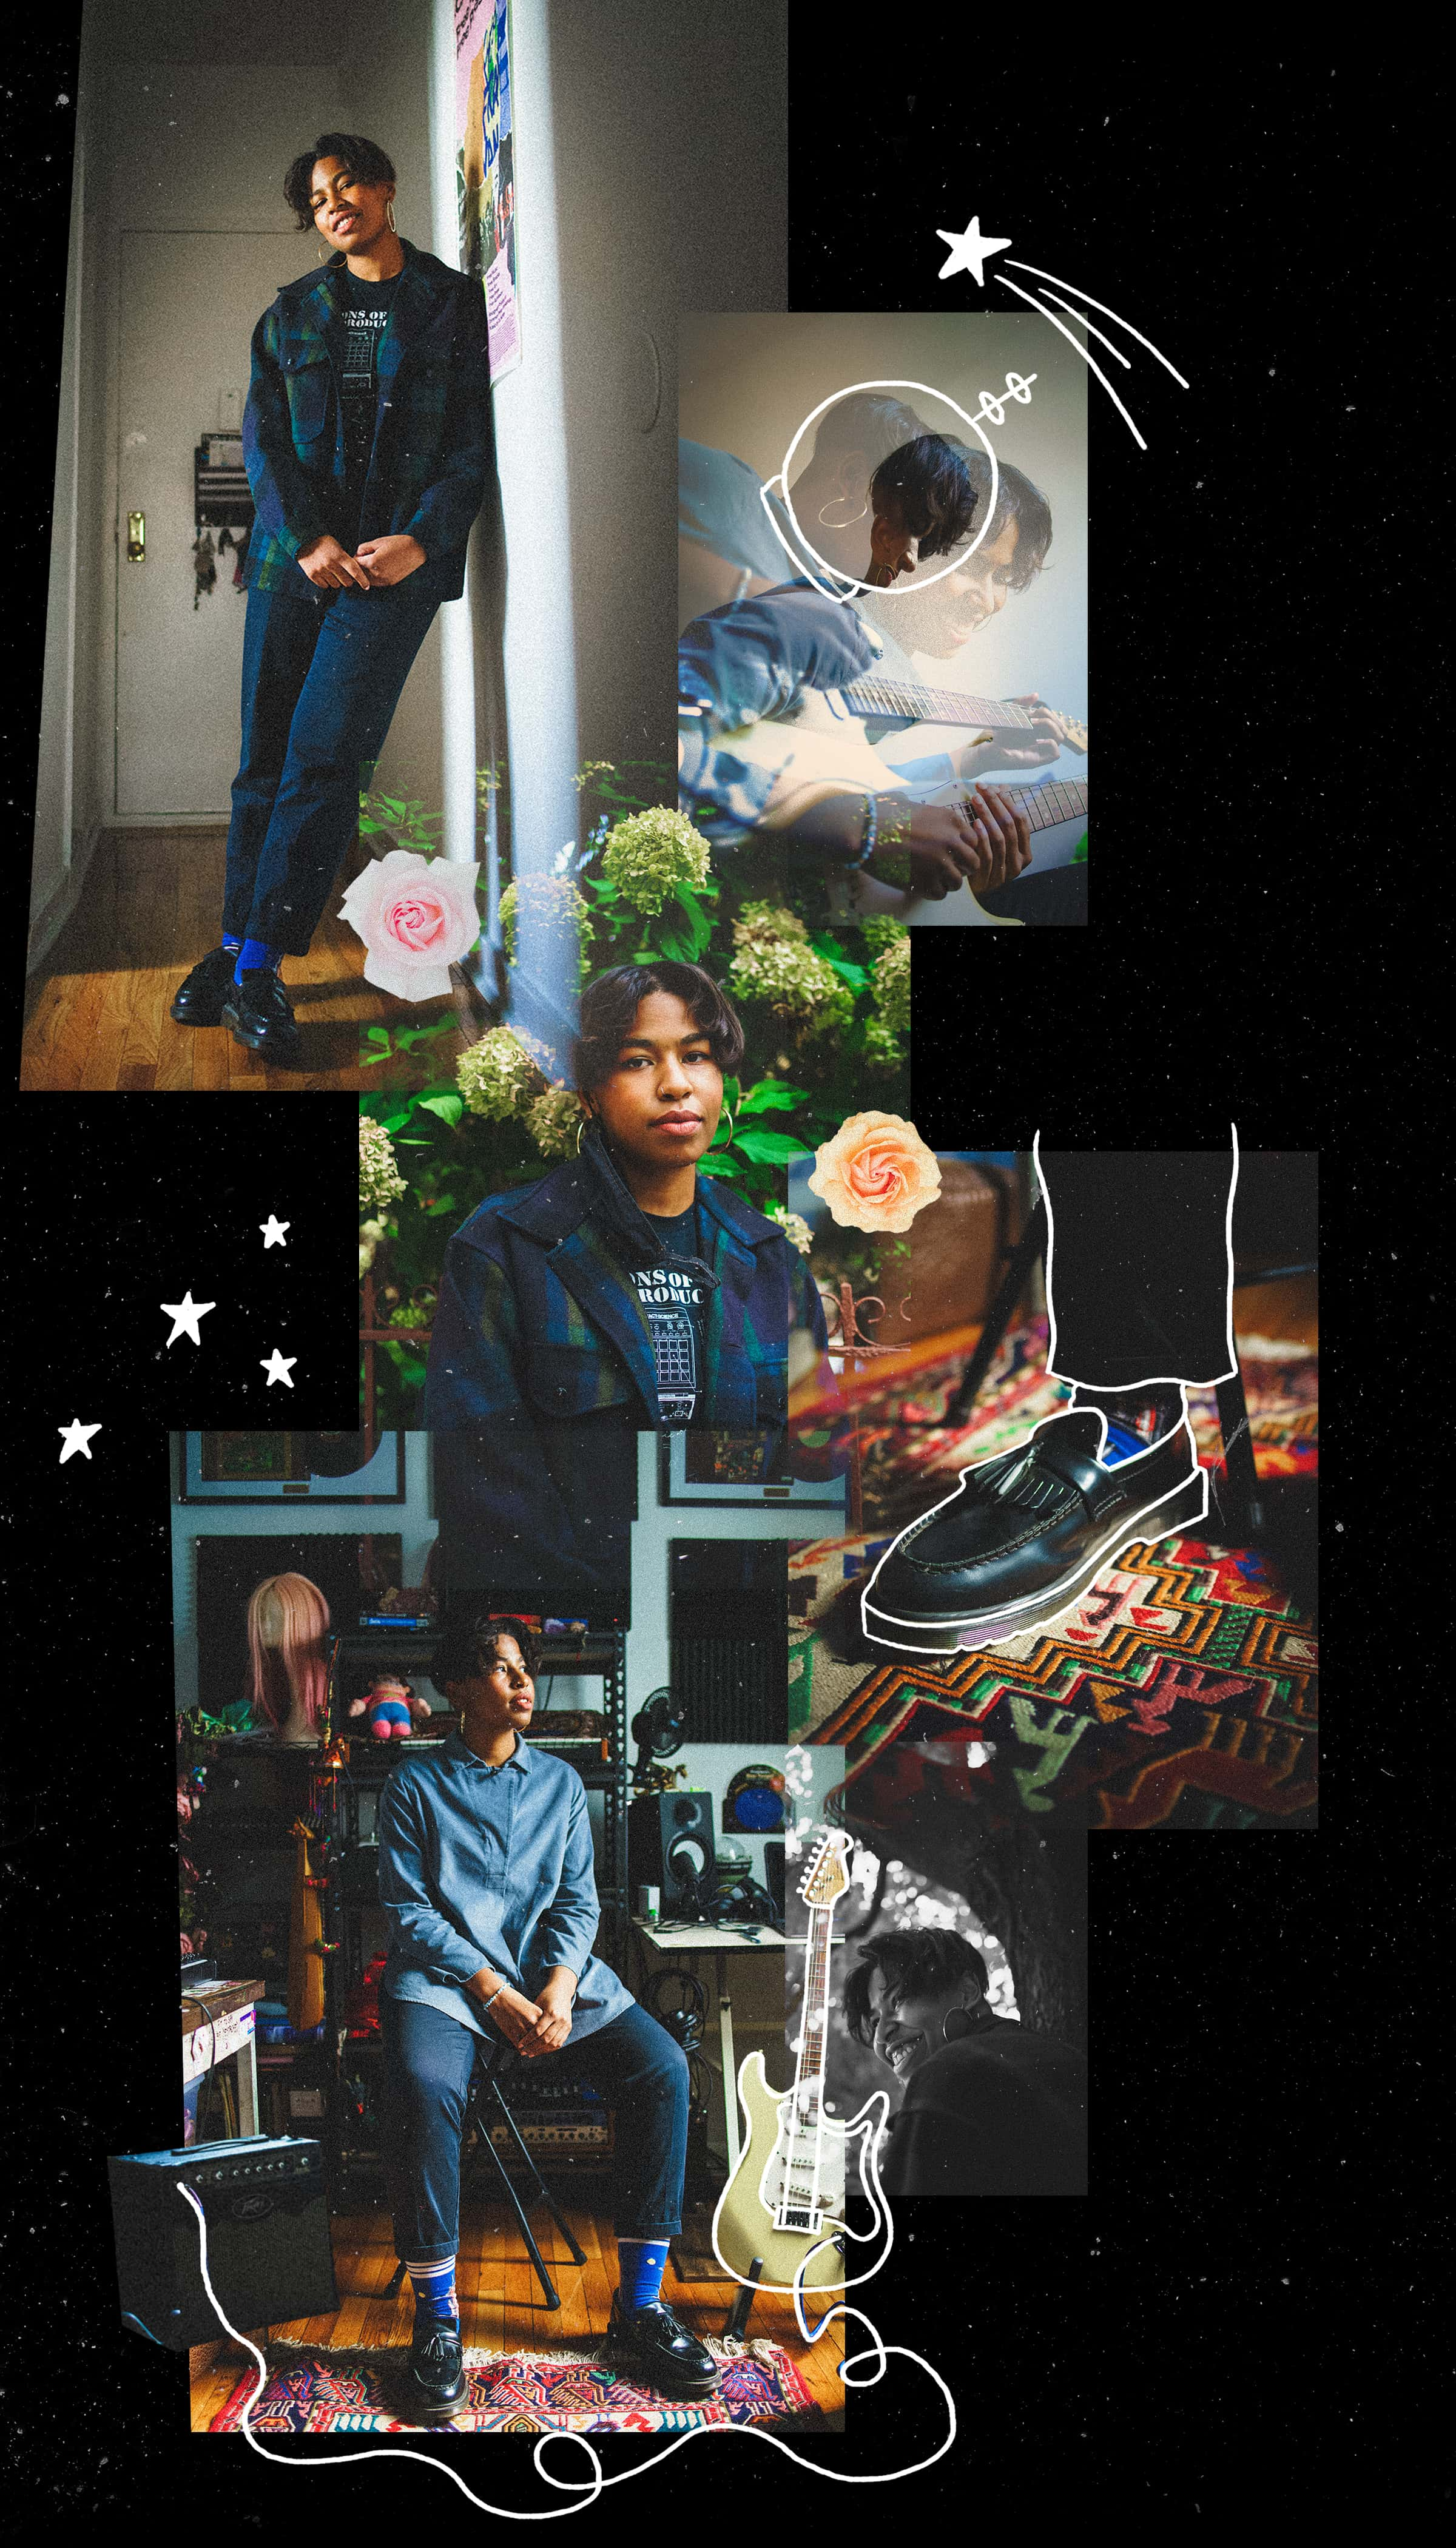 A collage of photos featuring Orion Sun surrounded by cut out flowers, hand-drawn stars, a guitar, and a space helmet.